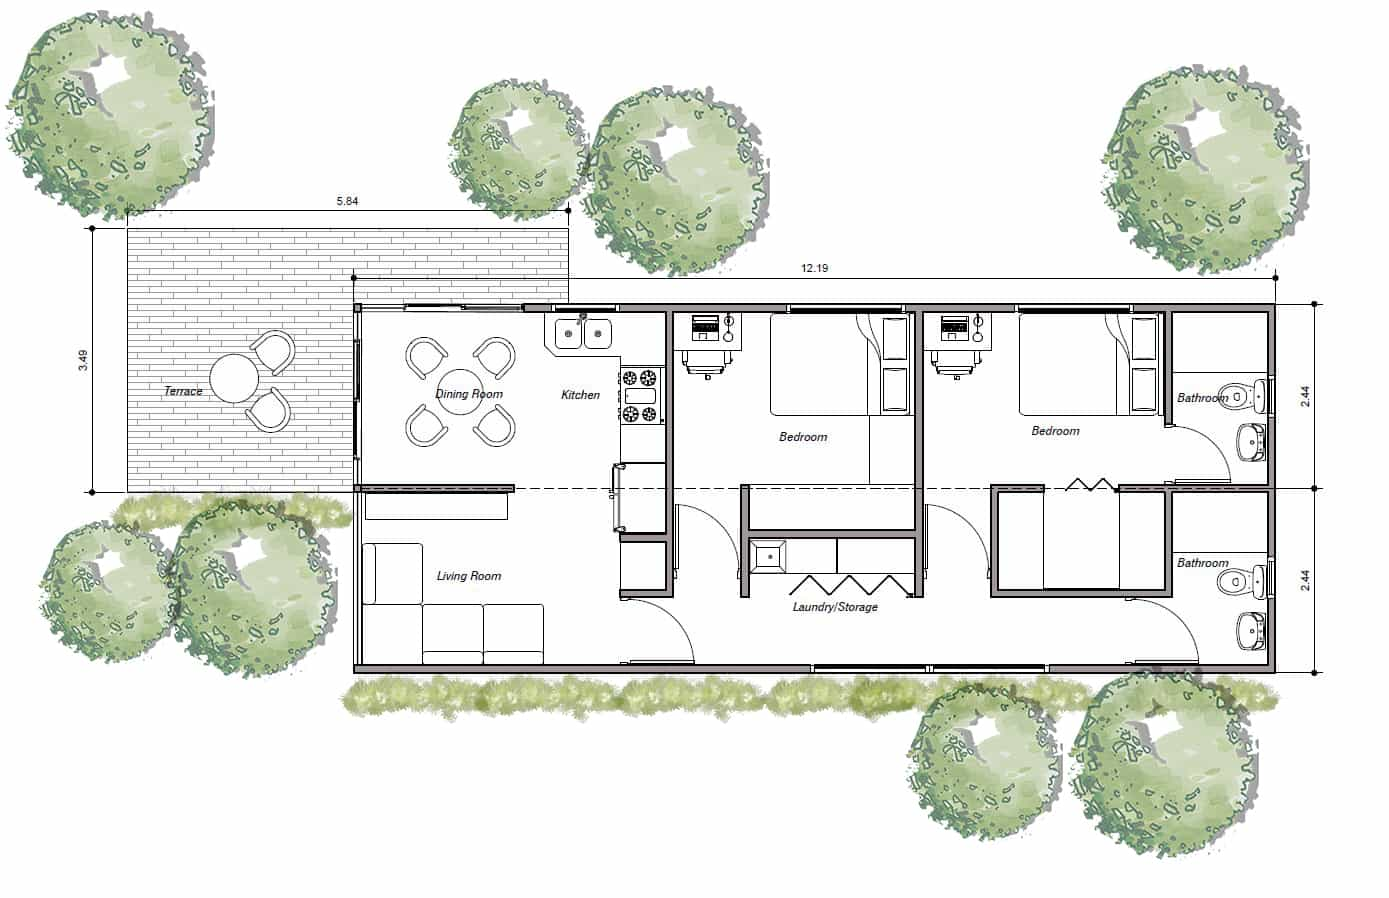 Shipping container house with two bedroom, pdf plan for free downloadplan, two 40' shipping container house